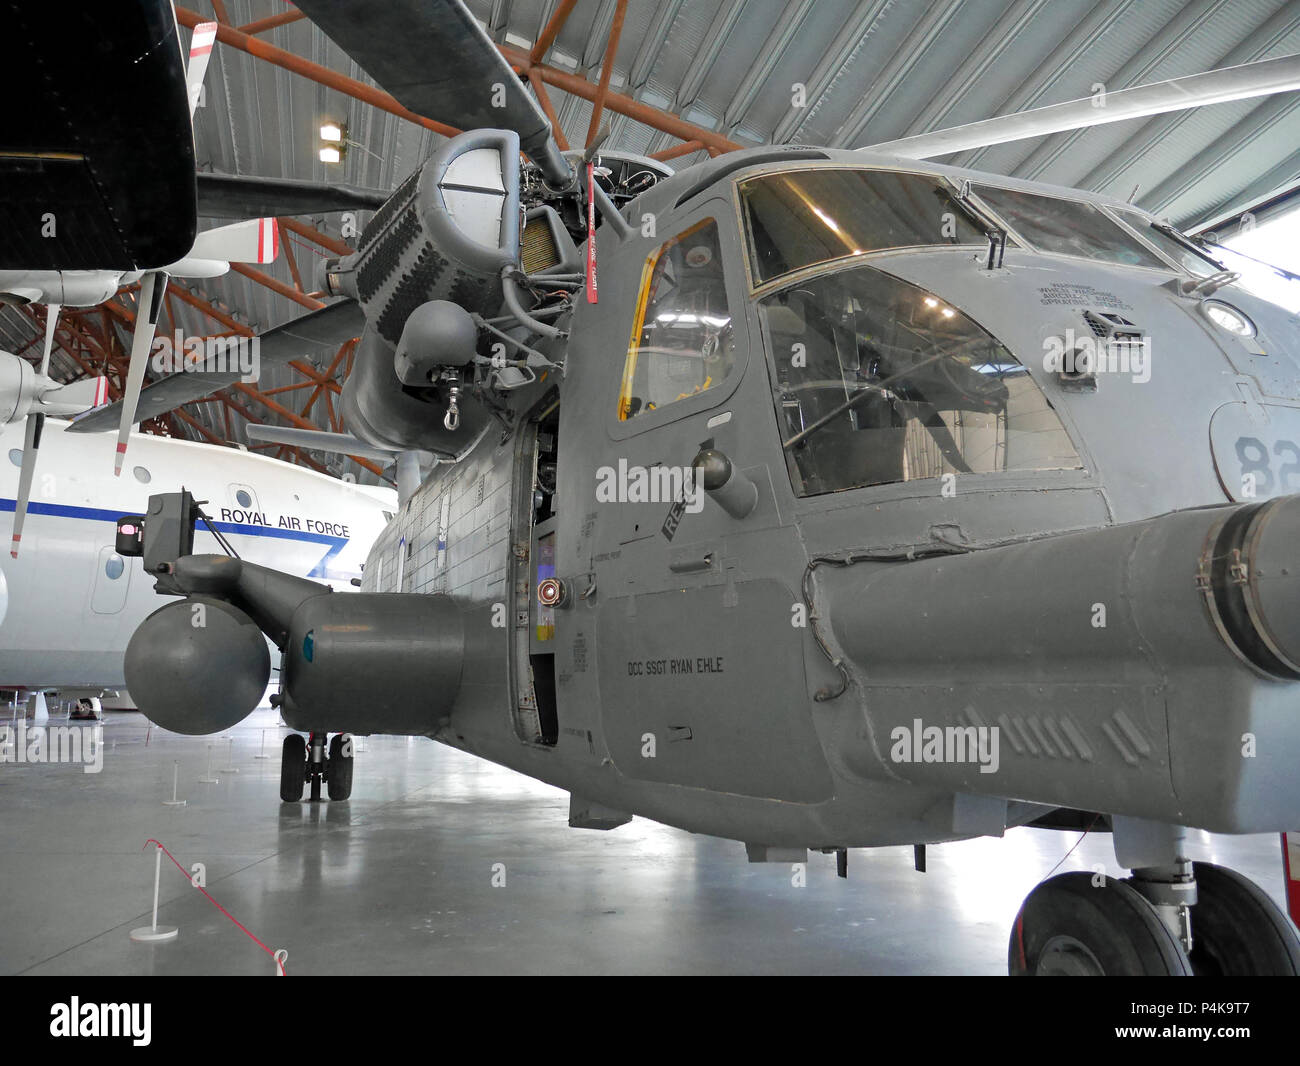 Sep- 30 2016 at RAF Cosford, Royal Air Force Museum, UK. Sikorsky HH-53C 'Stallion' Helicopter Converted to MH-53J PAVE System. - Stock Image